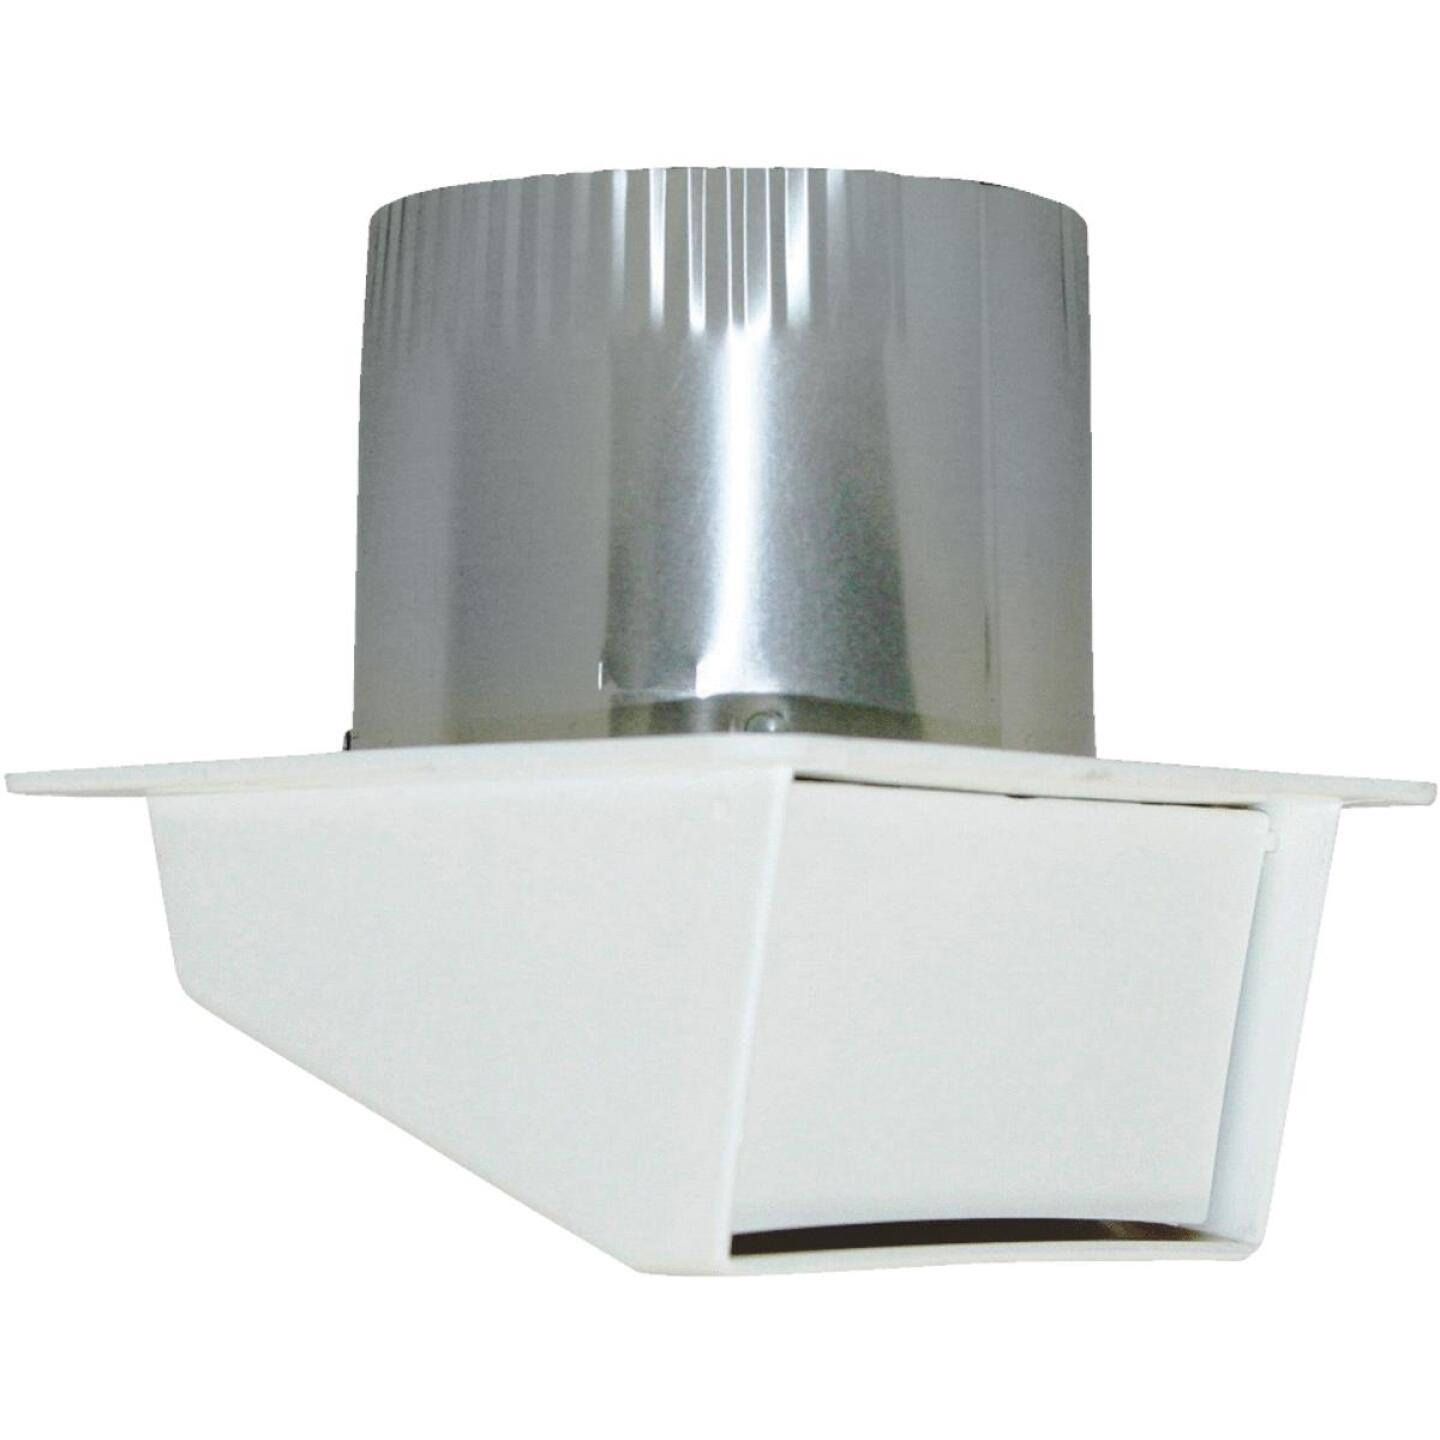 Builders Best 4 In. White Plastic Eave & Soffit Vent Image 1